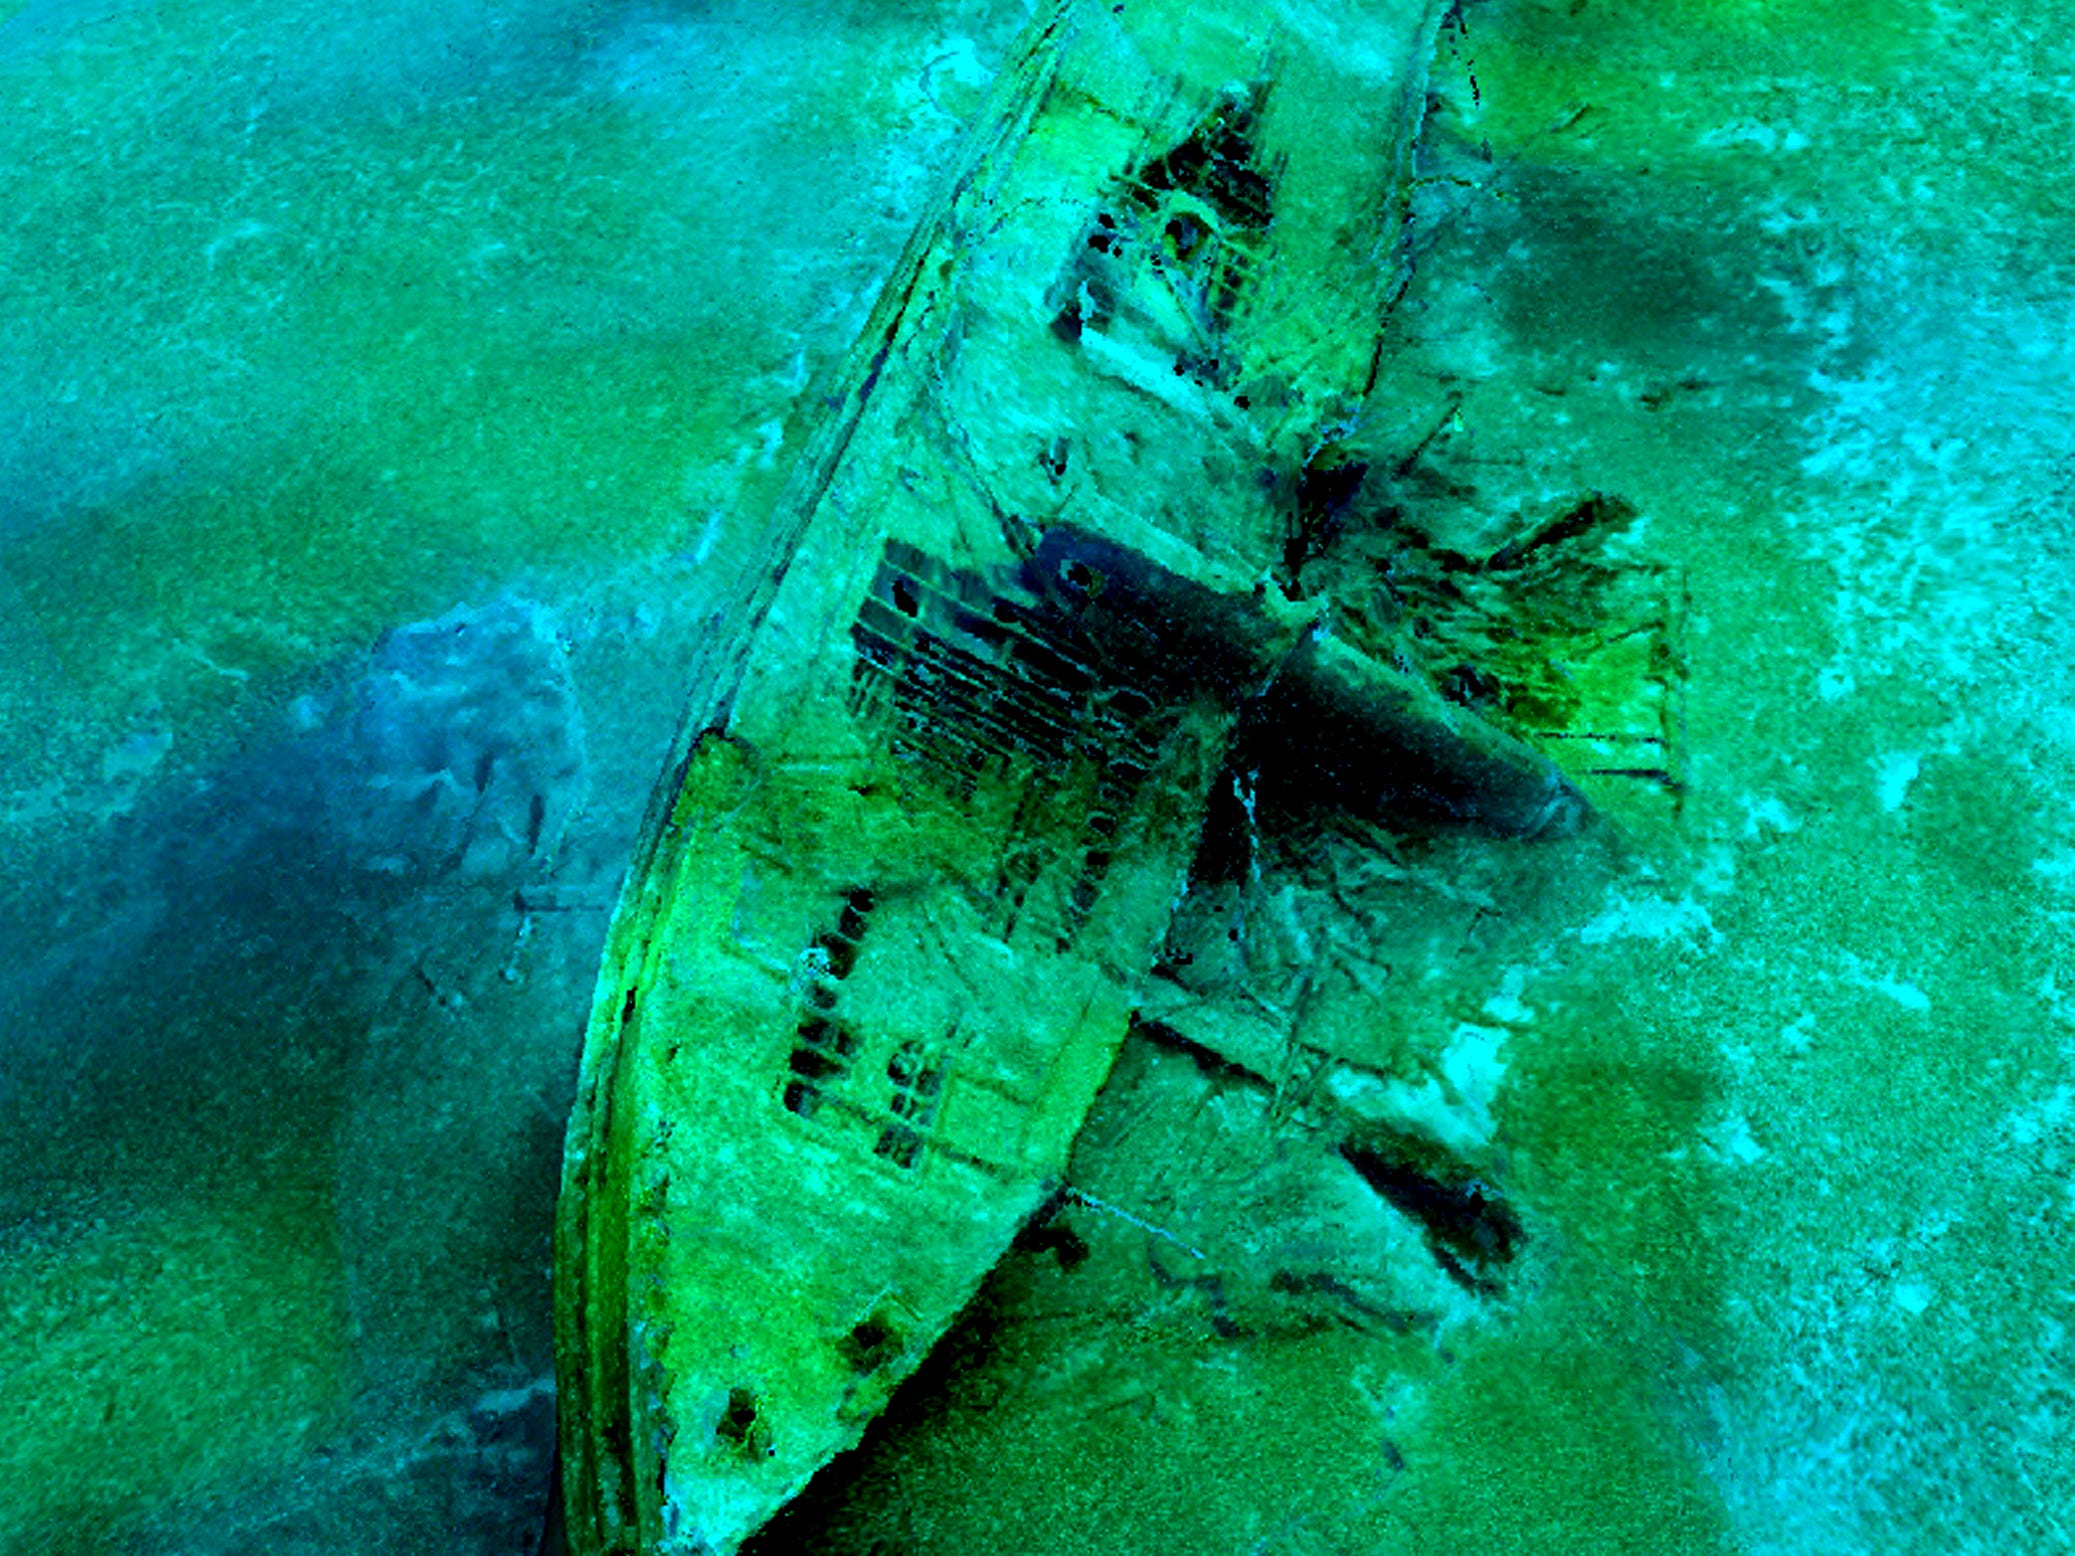 """""""I never thought the wreck would be found in my lifetime,"""" confessed Robert Crawford, 83, """"but when that little image appeared on the screen, and I later watched video that was sent up to our boat by a remote-operated camera, I was elated! I was a bit surprised that I felt far more excitement than sadness."""""""